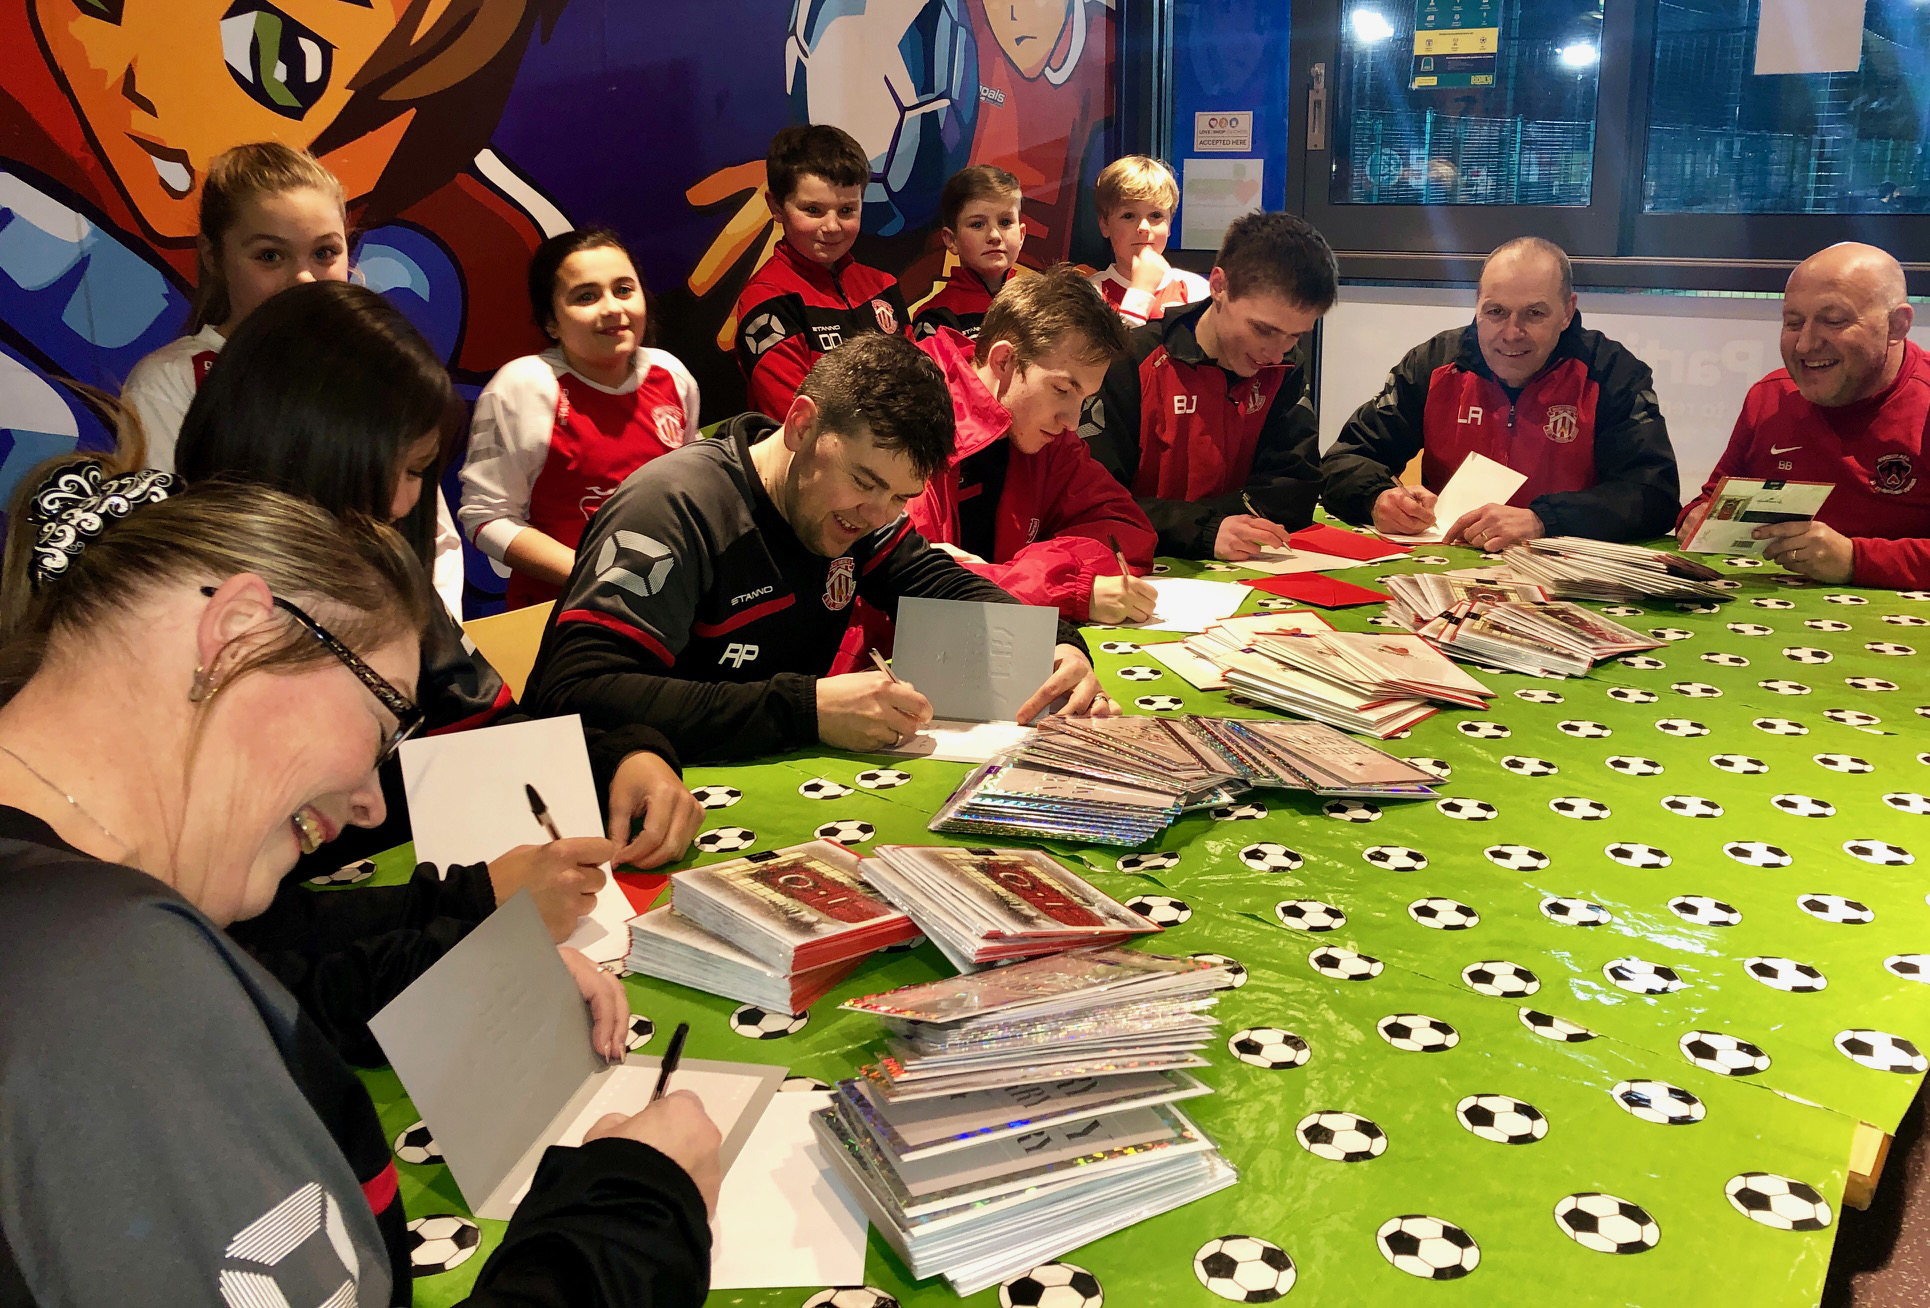 Above: Hallmark teamed up with its local football club, Thackley Juniors, donating 400 Christmas cards so that the football club coaches could say thank you and Merry Christmas to the parents of their players. The team got together with their coaches for a group Christmas card writing session.